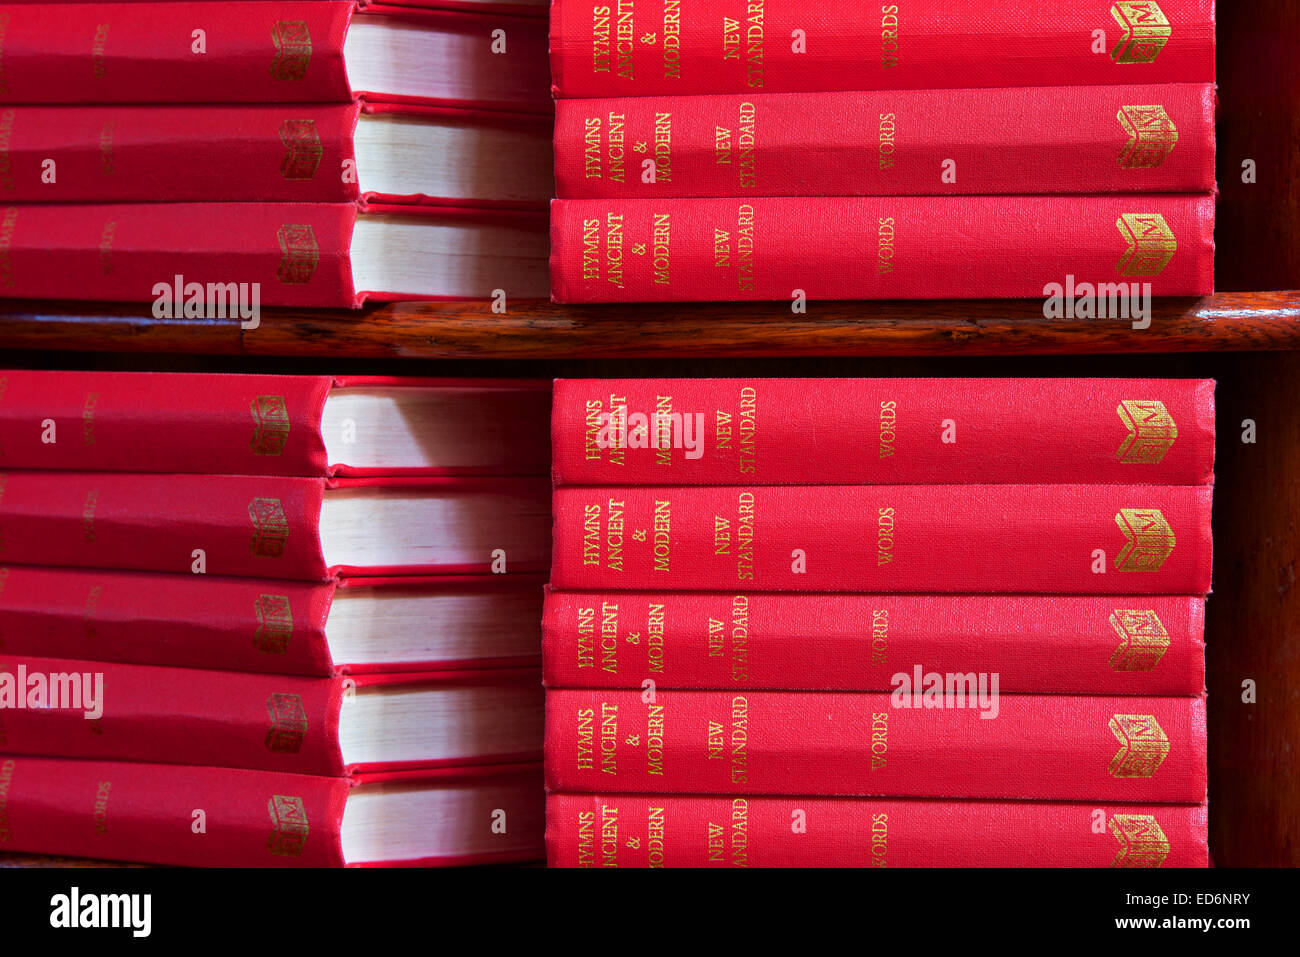 Hymn Books Stock Photos & Hymn Books Stock Images - Alamy